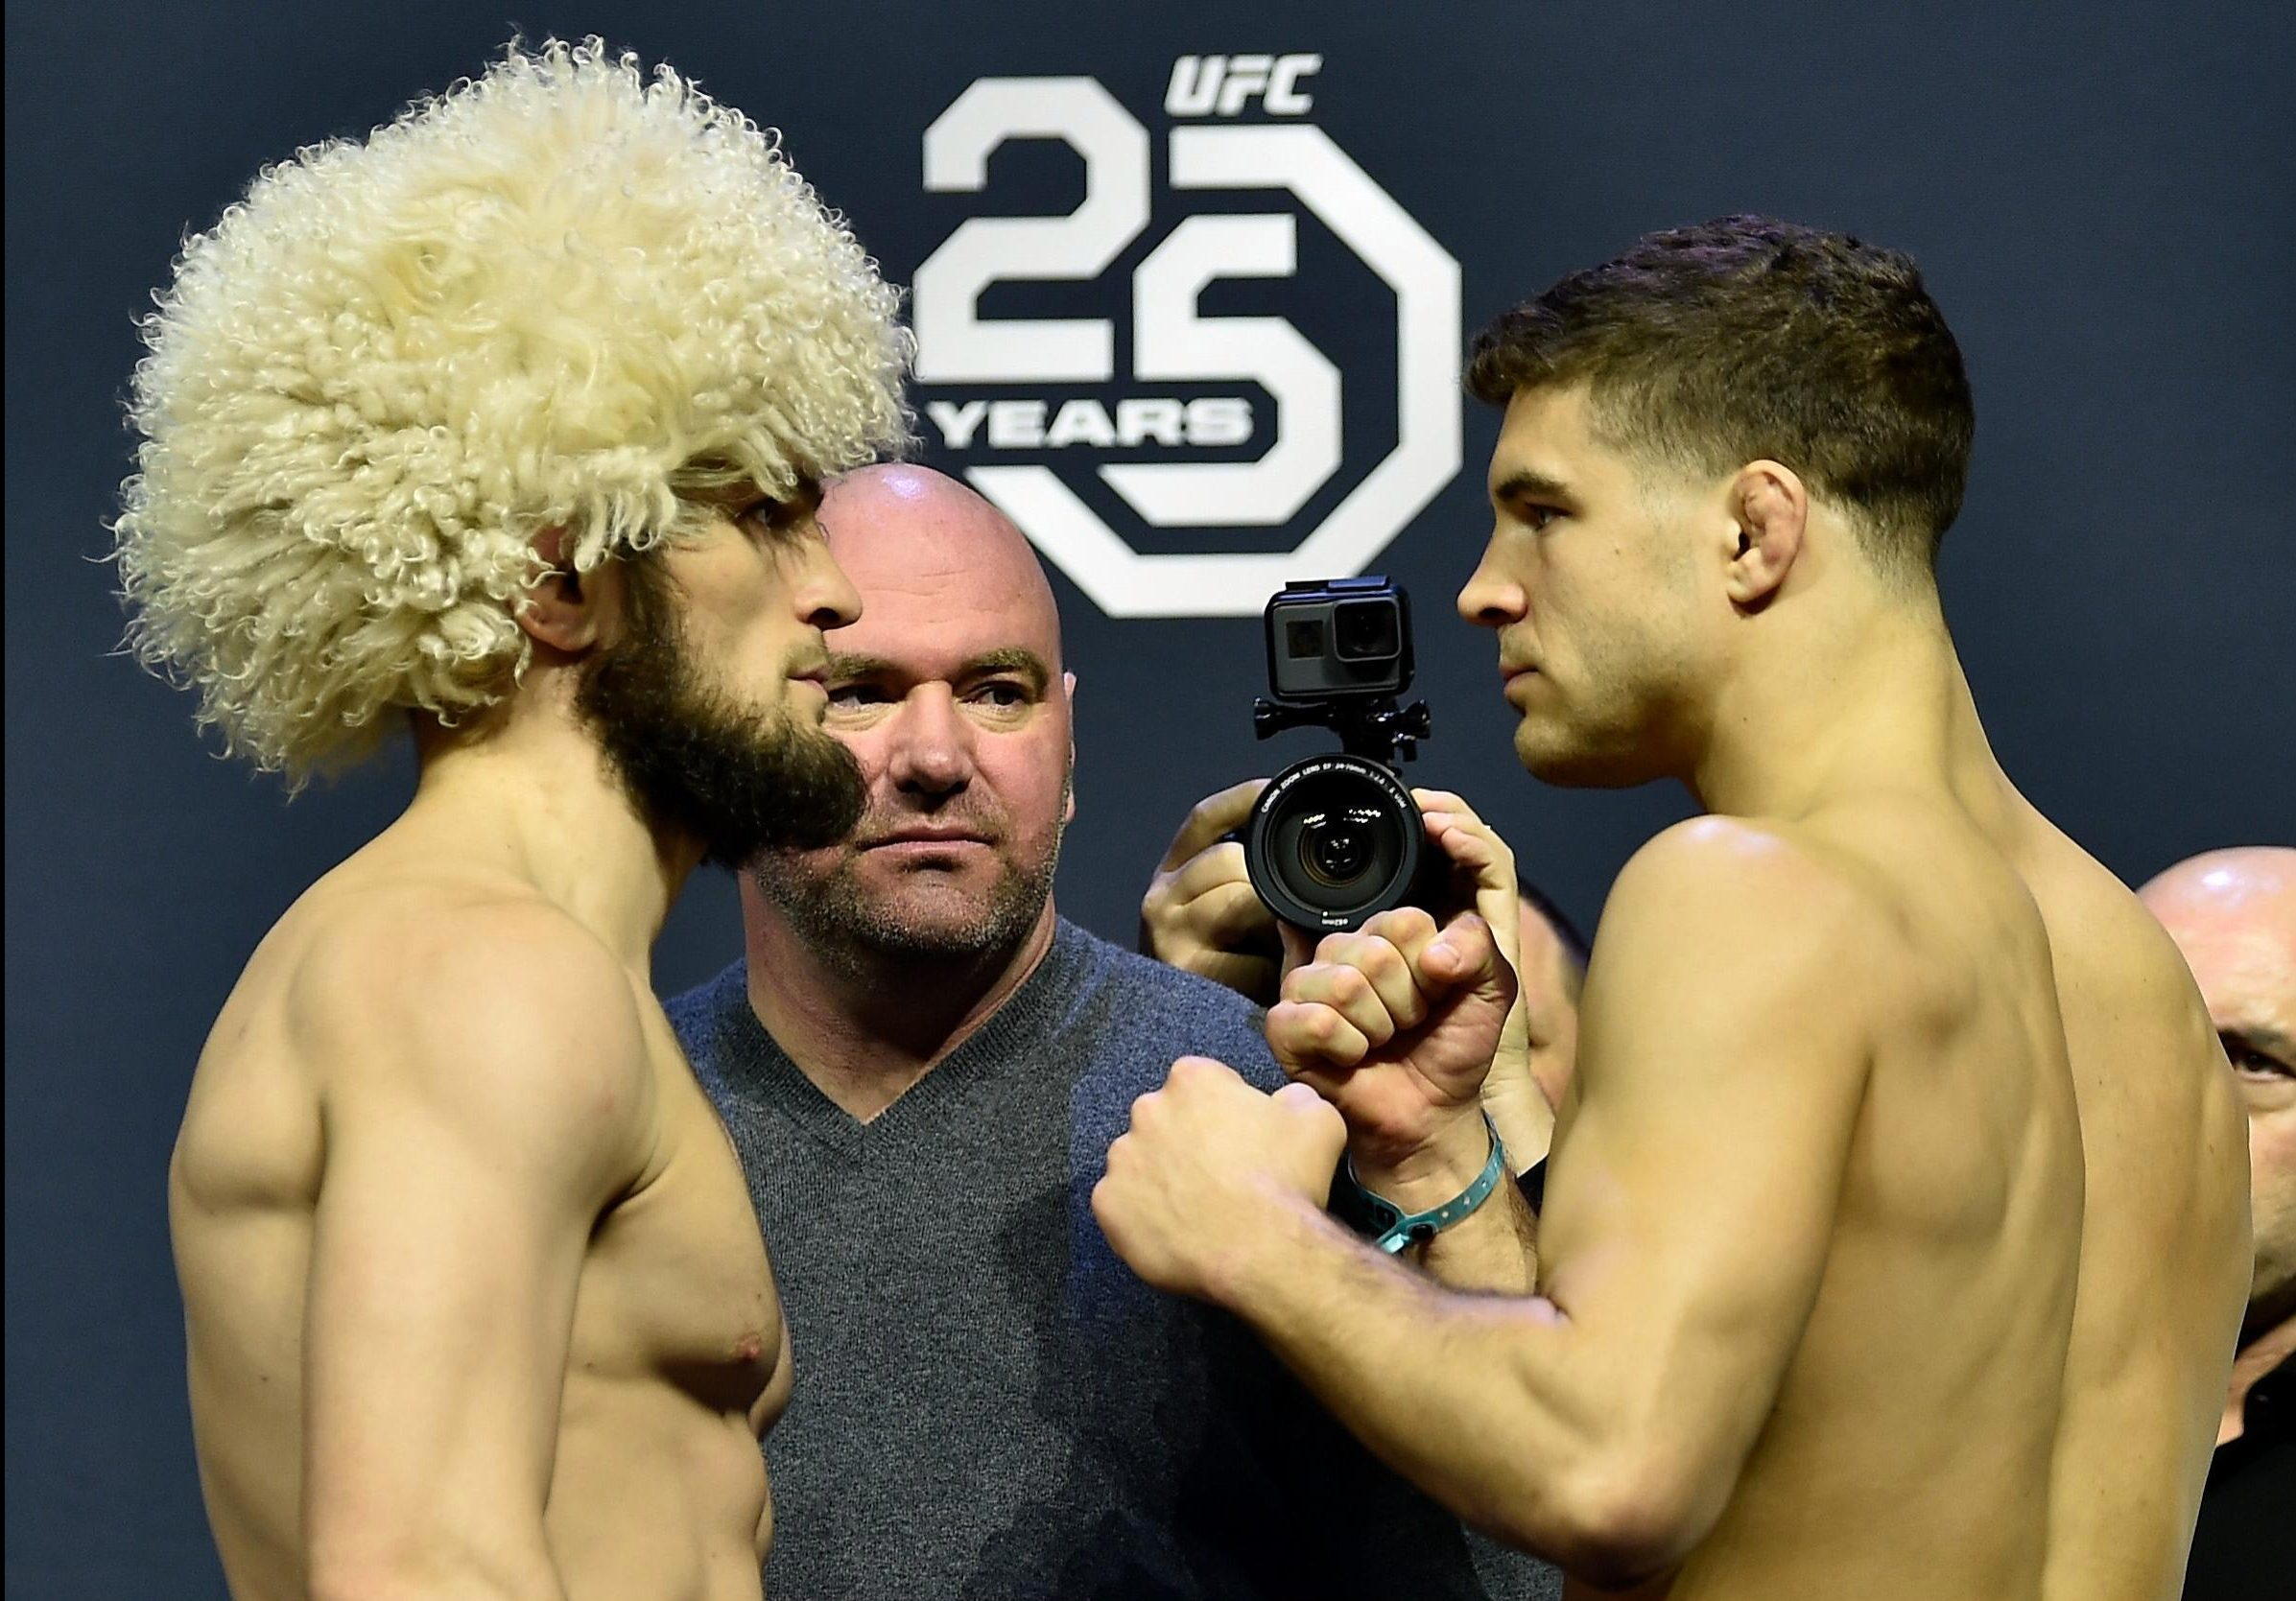 Khabib Nurmagomedov of Russia and Al Iaquinta face off during the UFC 223 weigh-in